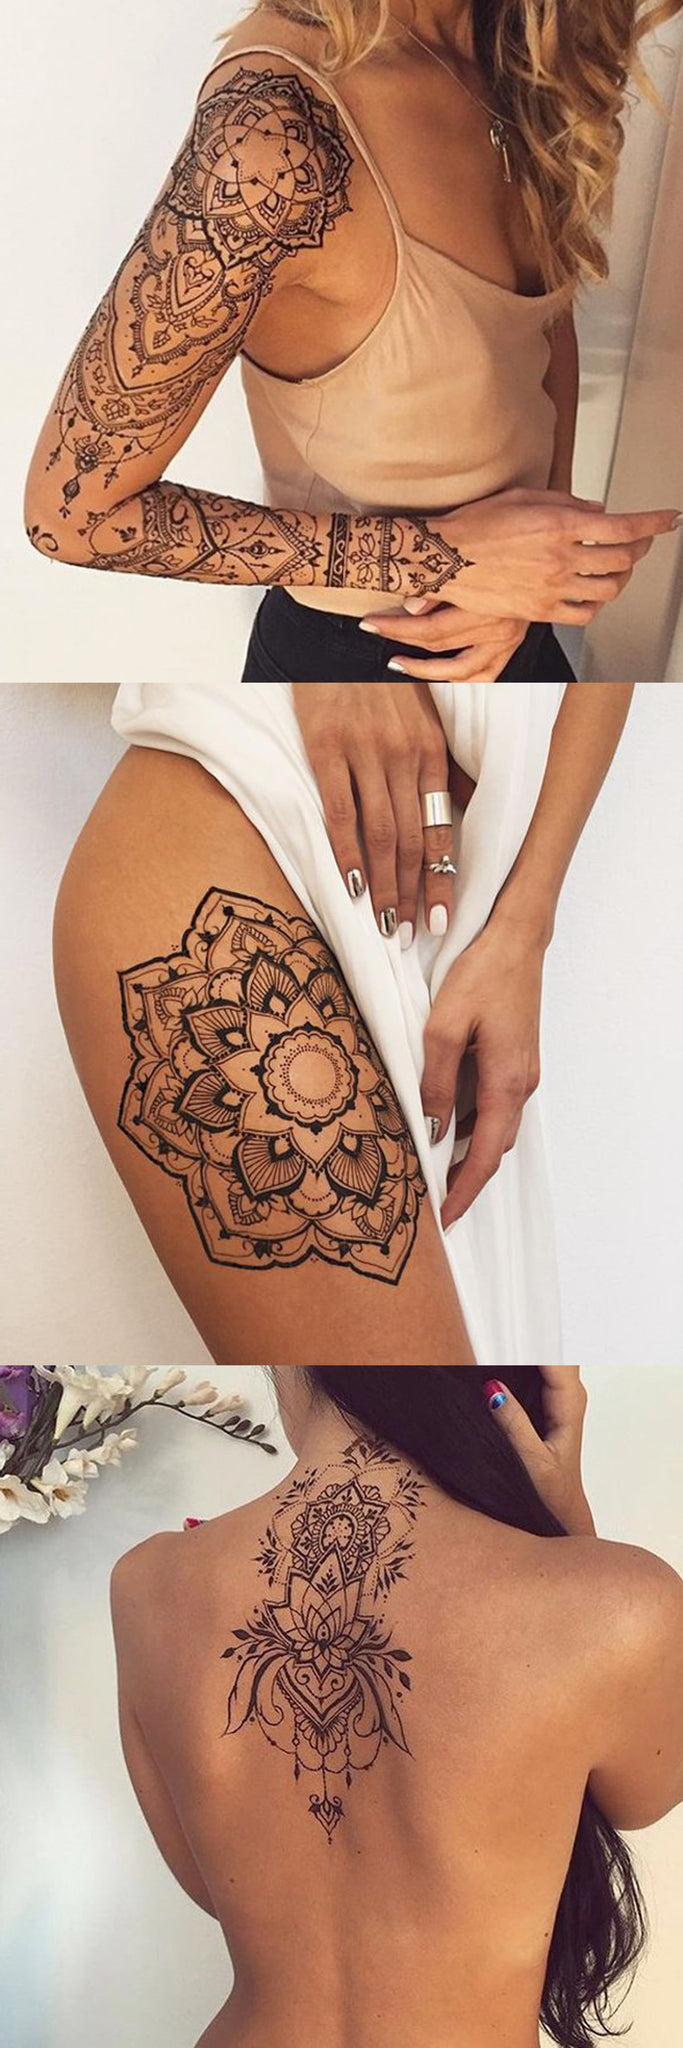 30 mandala tattoo ideas that will always be popular mybodiart. Black Bedroom Furniture Sets. Home Design Ideas